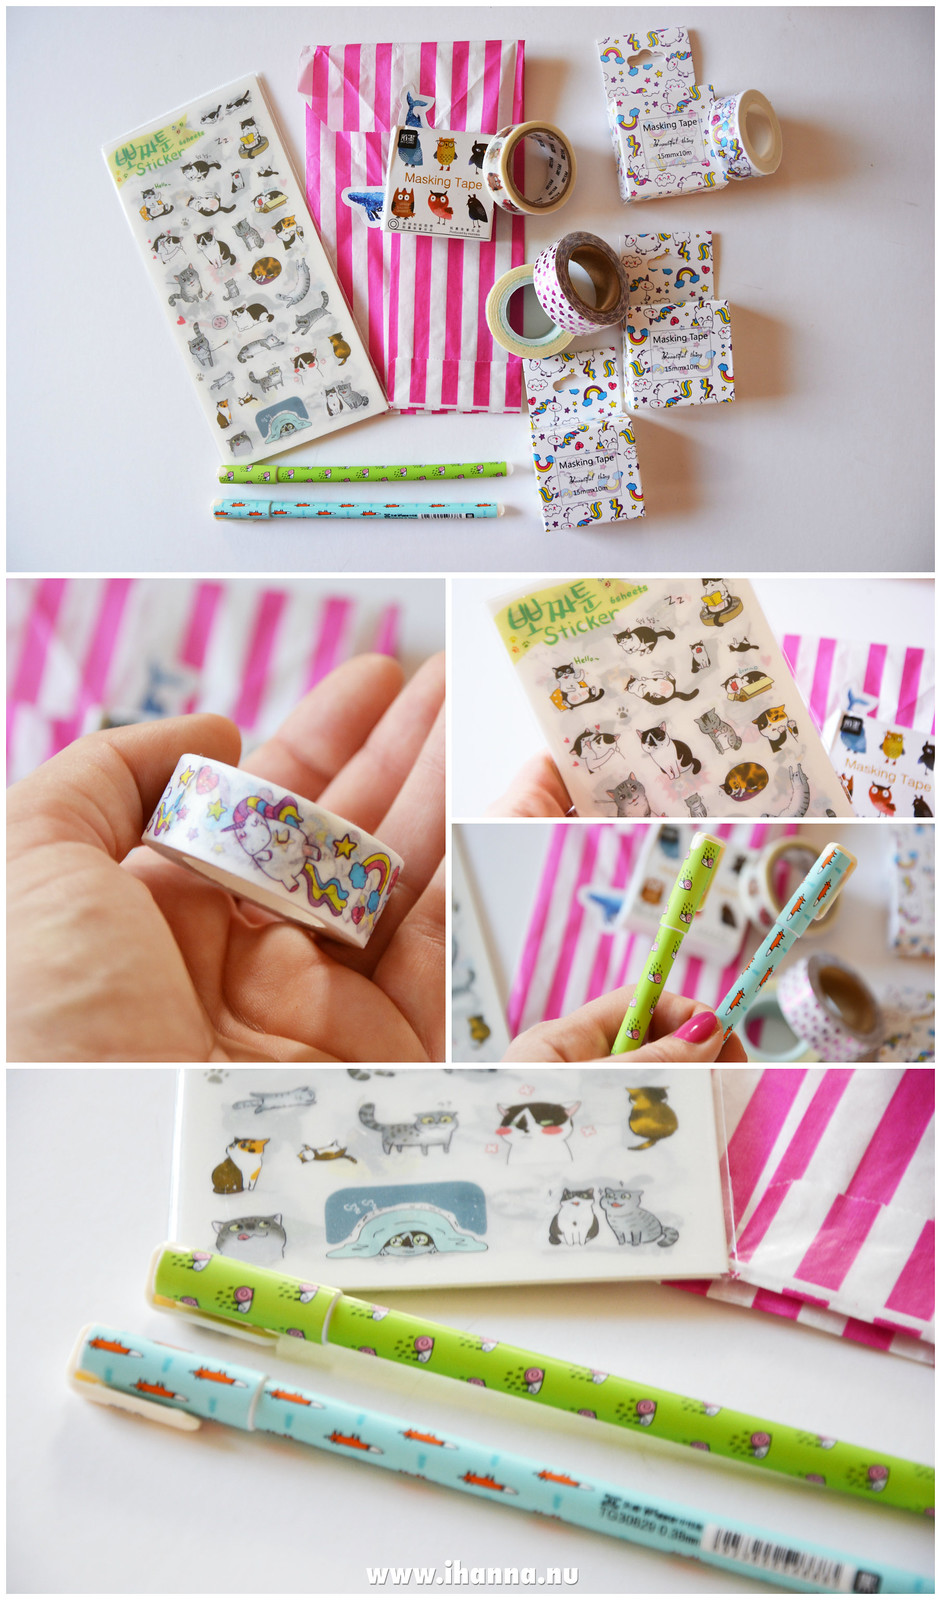 Cute Stuff Etsy Haul, video and blog post by @ihanna #stationary #etsy